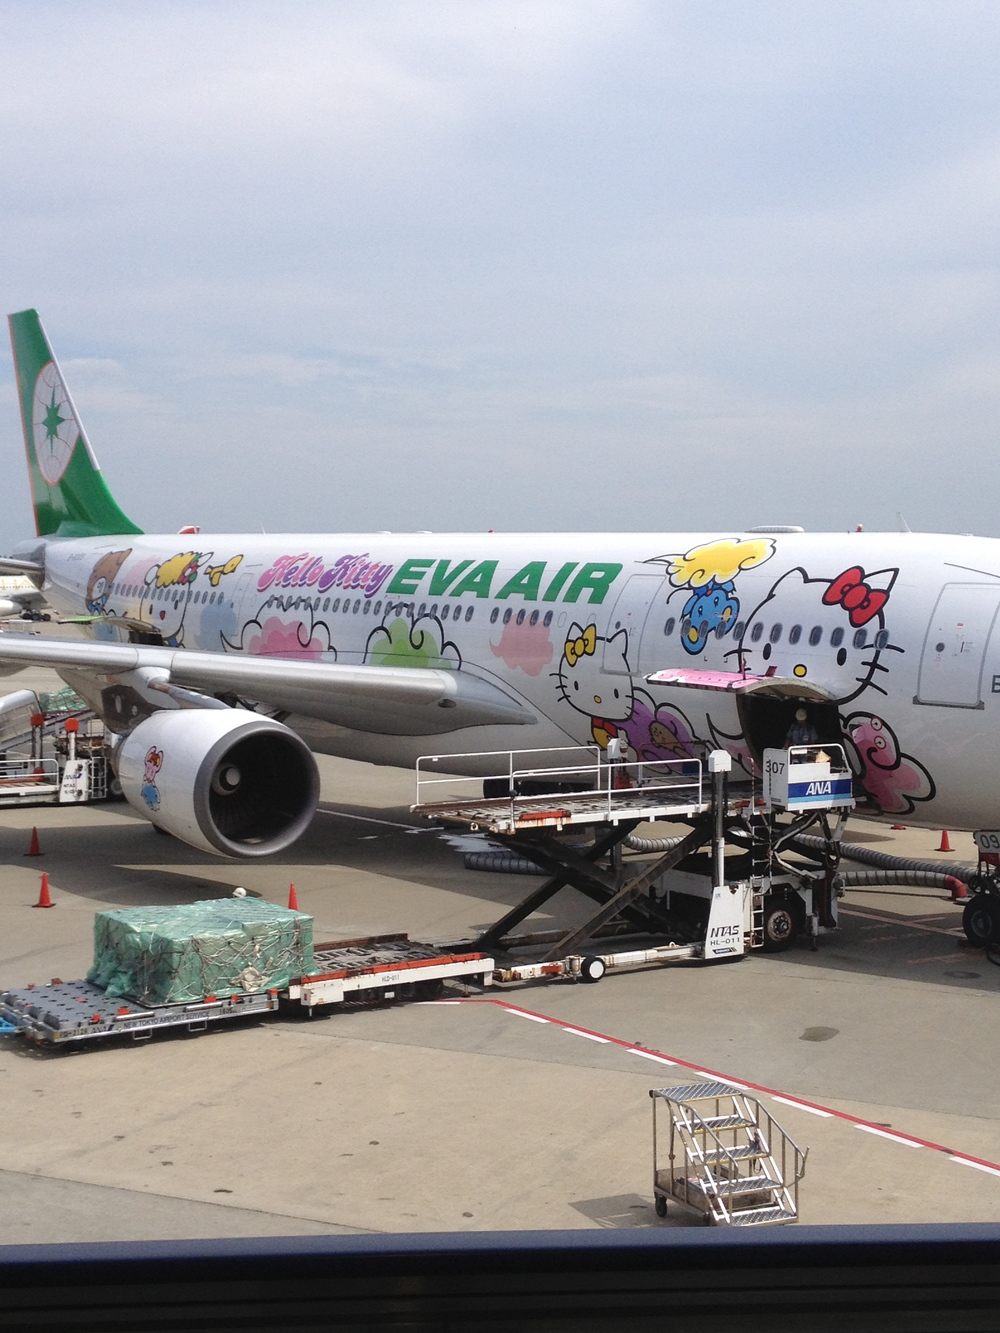 Because it only makes sense to end this with a Hello Kitty airplane. Even air transit doesn't have to be taken so seriously.